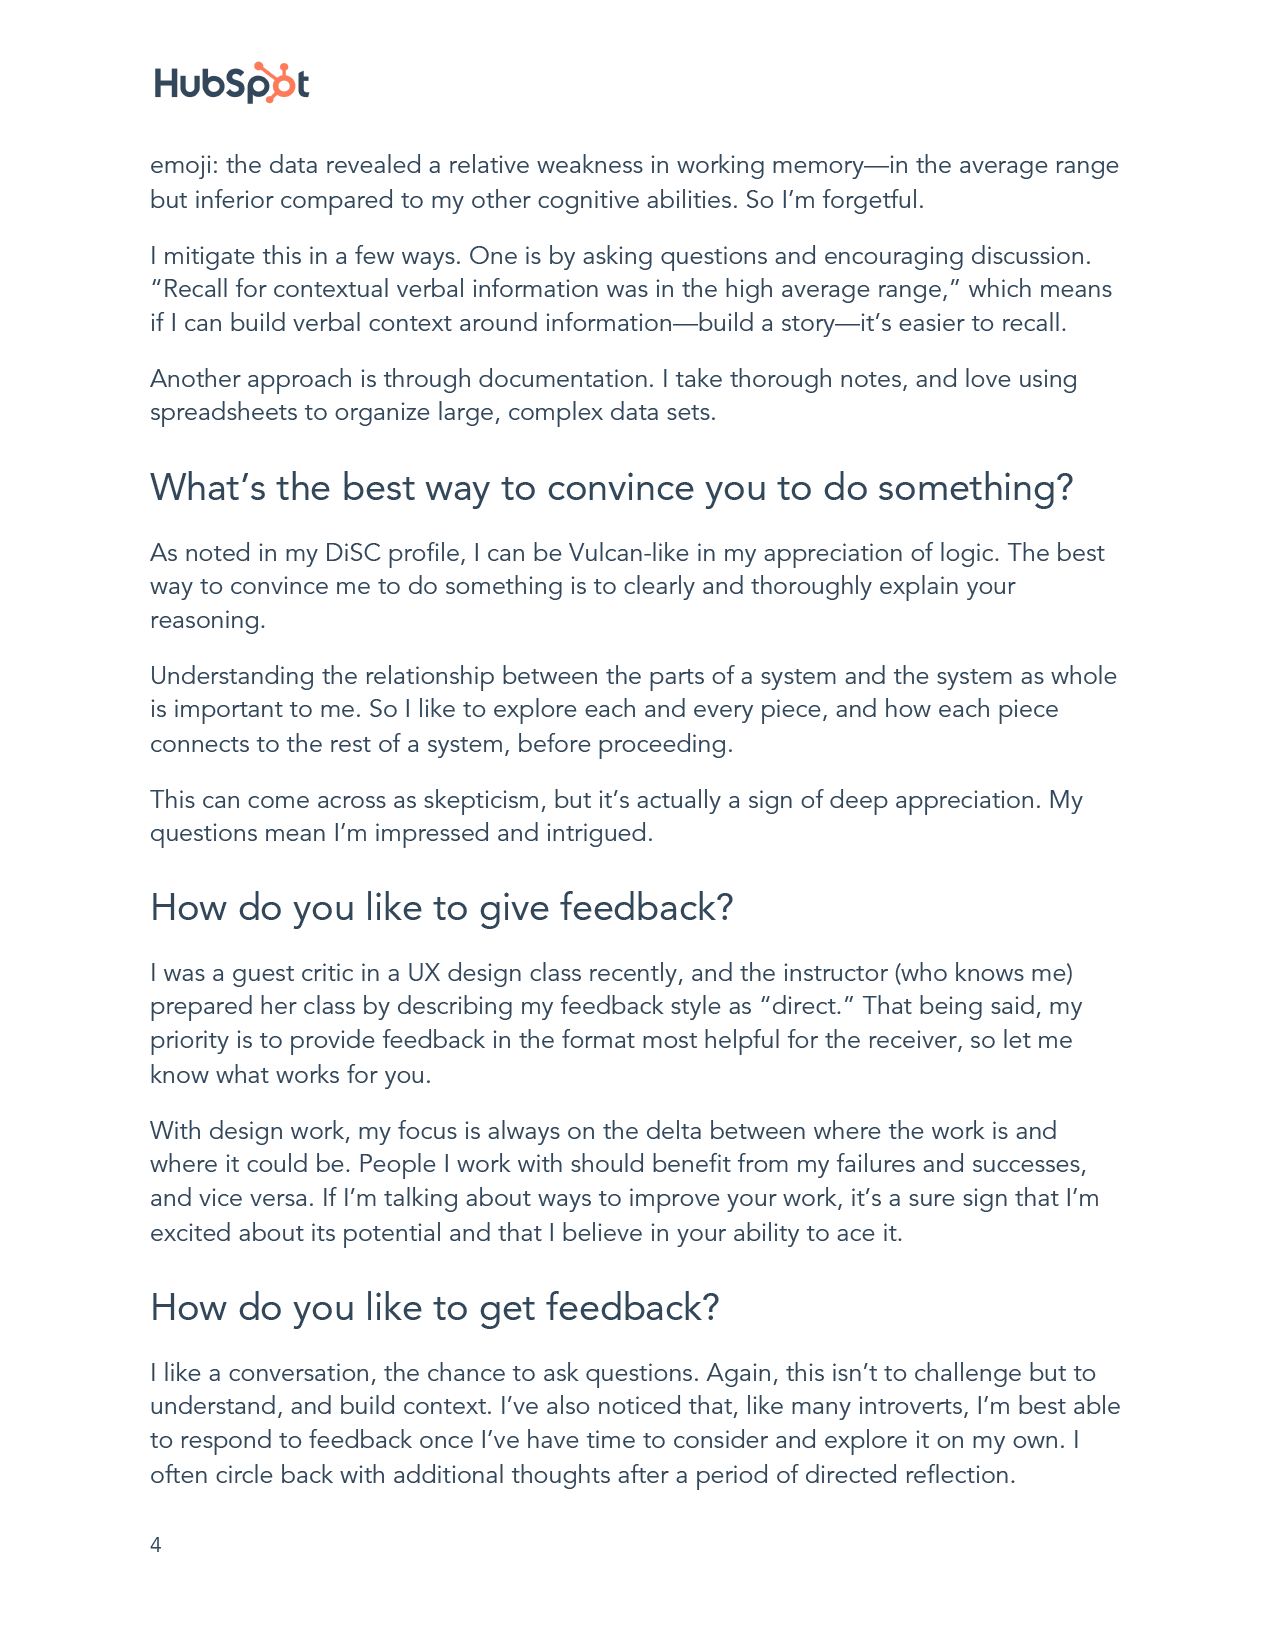 Ben Spear _ Marketing Team User Guide-4.png